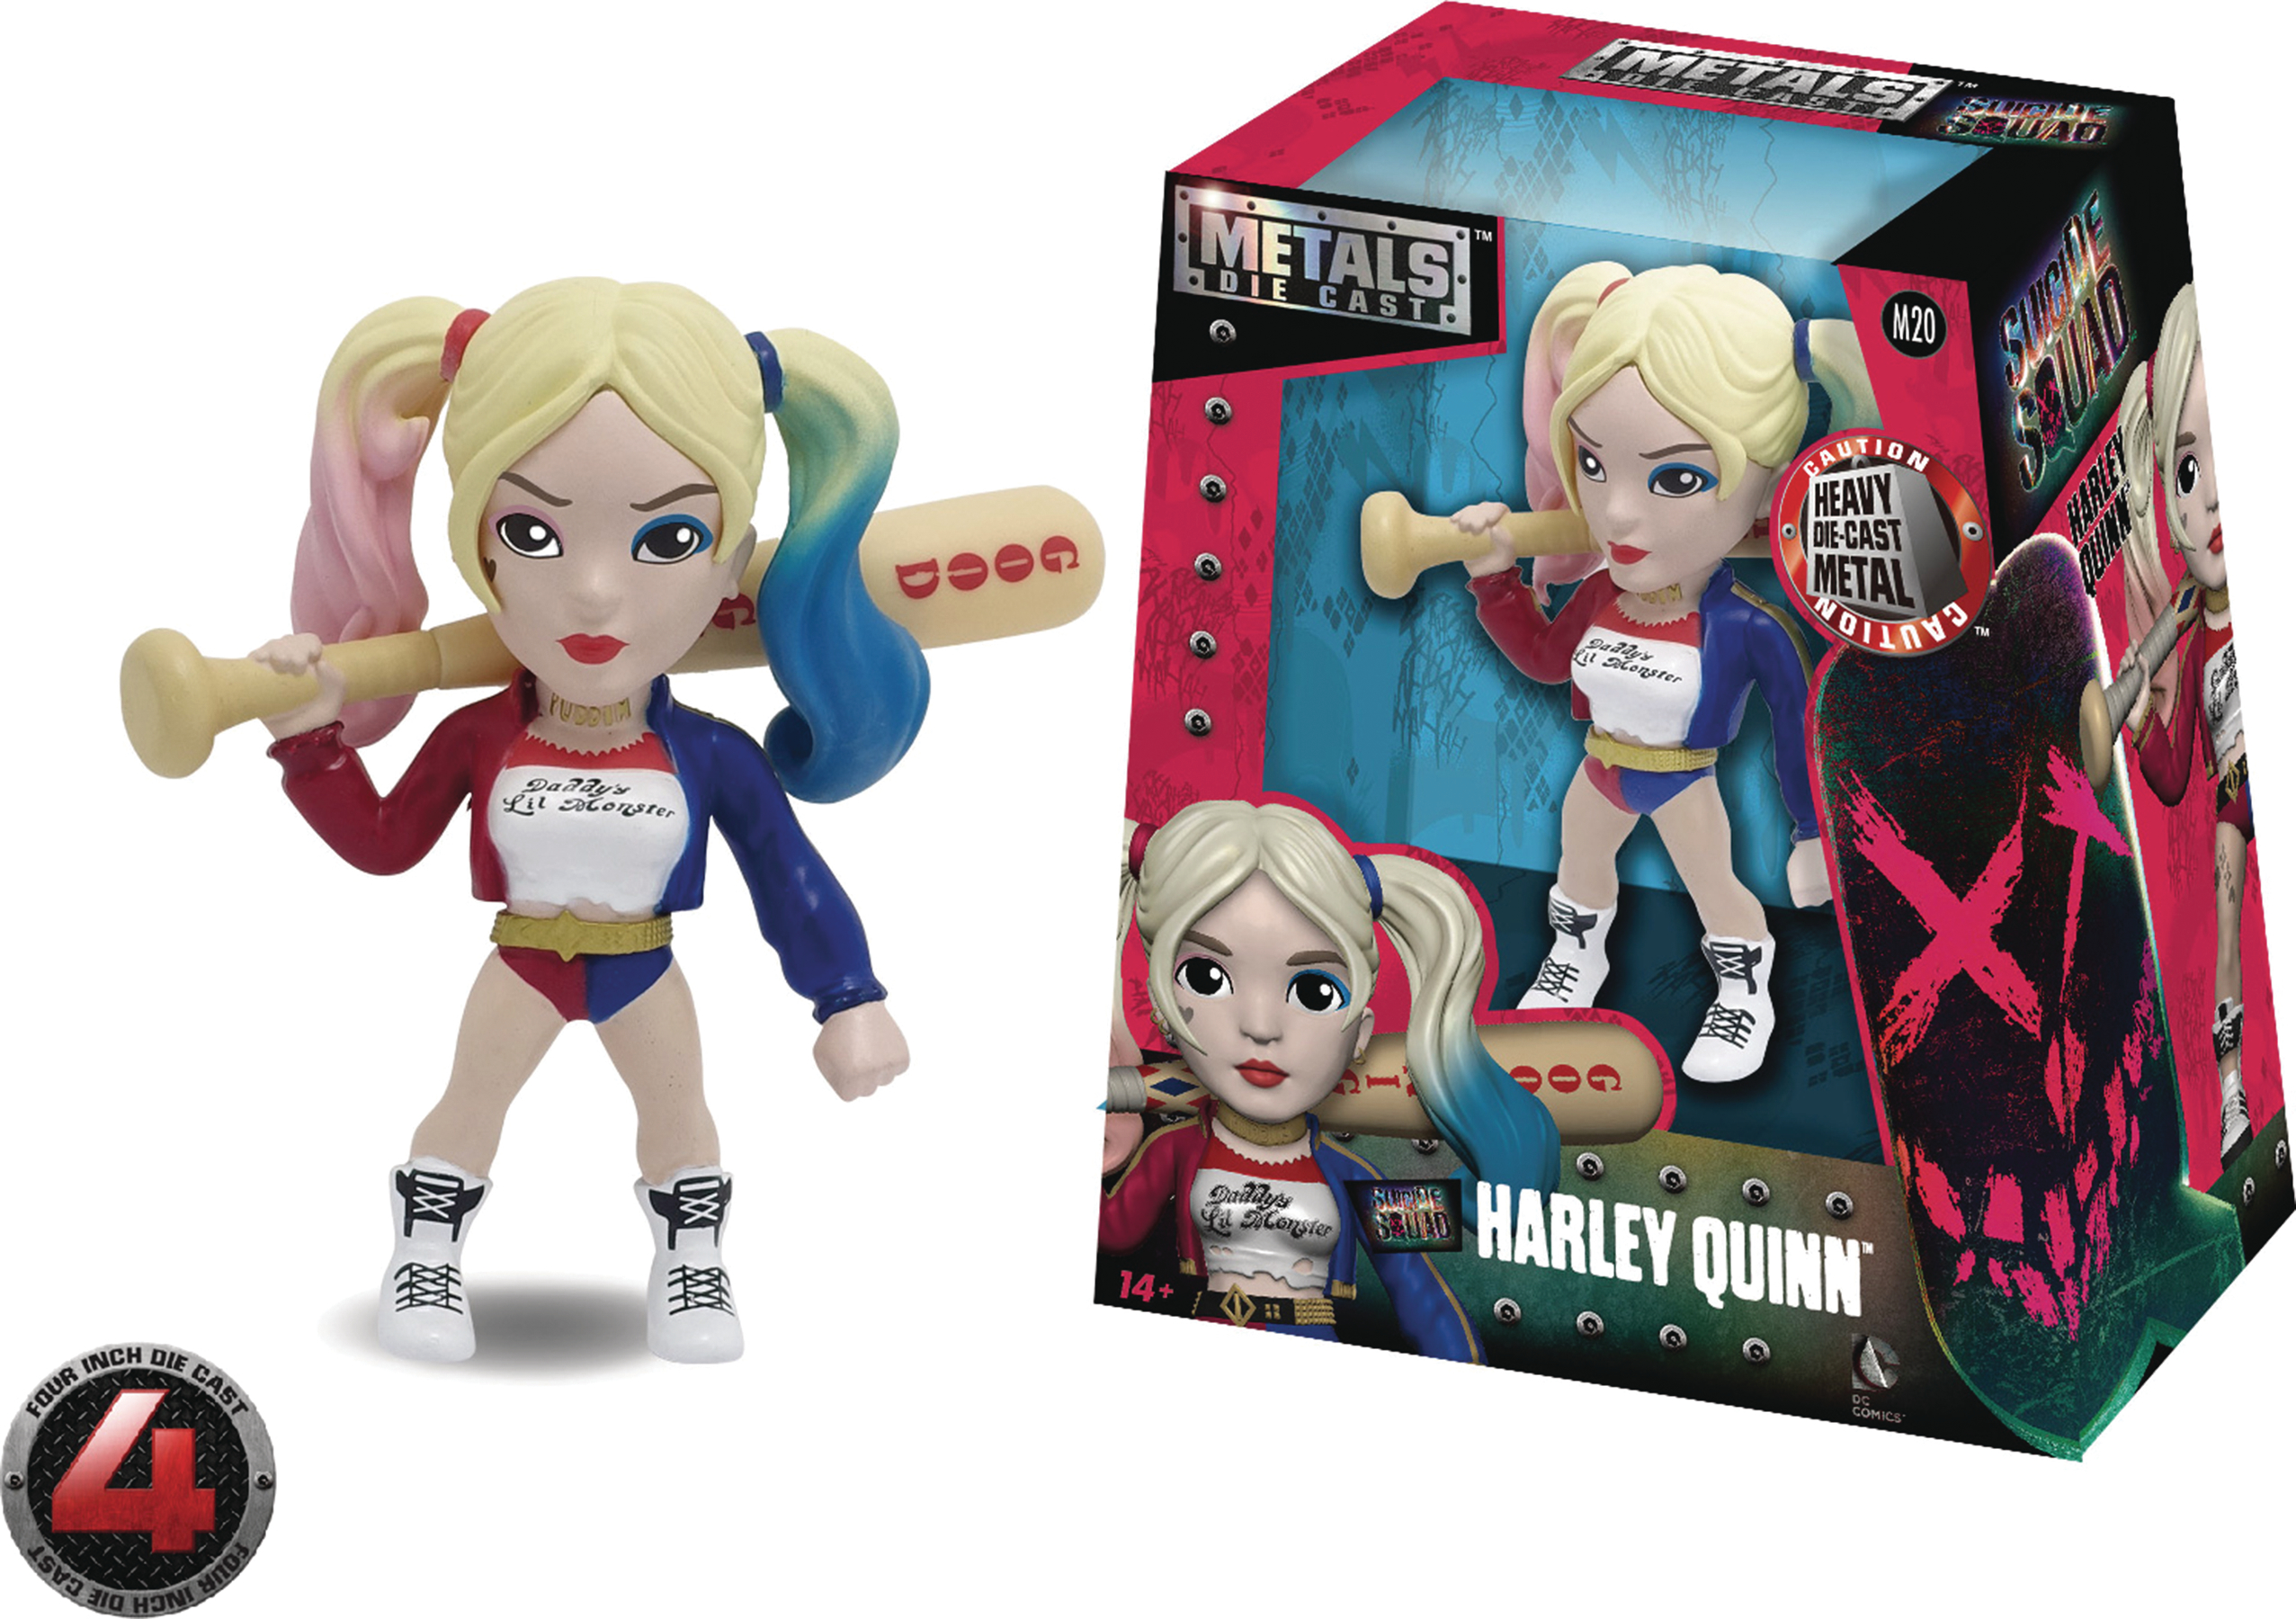 METALS SUICIDE SQUAD HARLEY QUINN 4IN DIE-CAST FIG